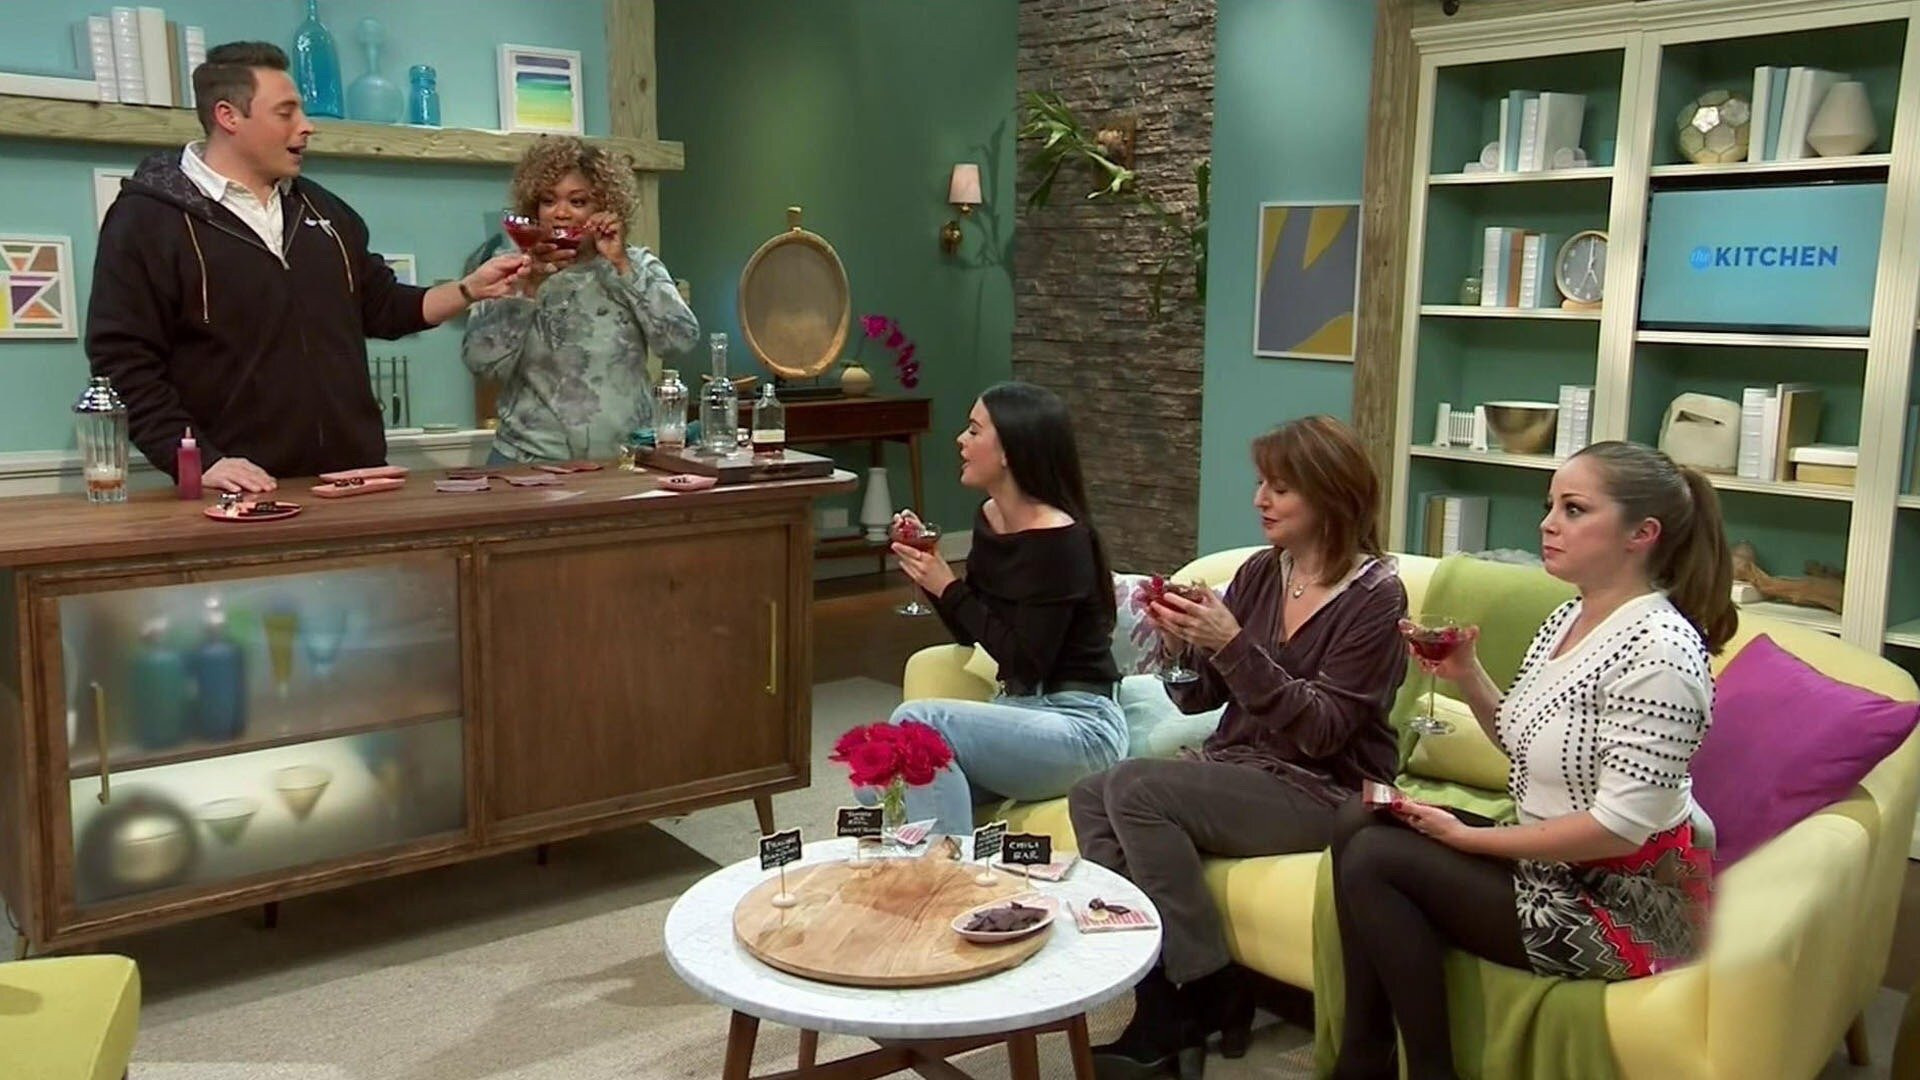 The Kitchen — s08e11 — Chock Full of Chocolate